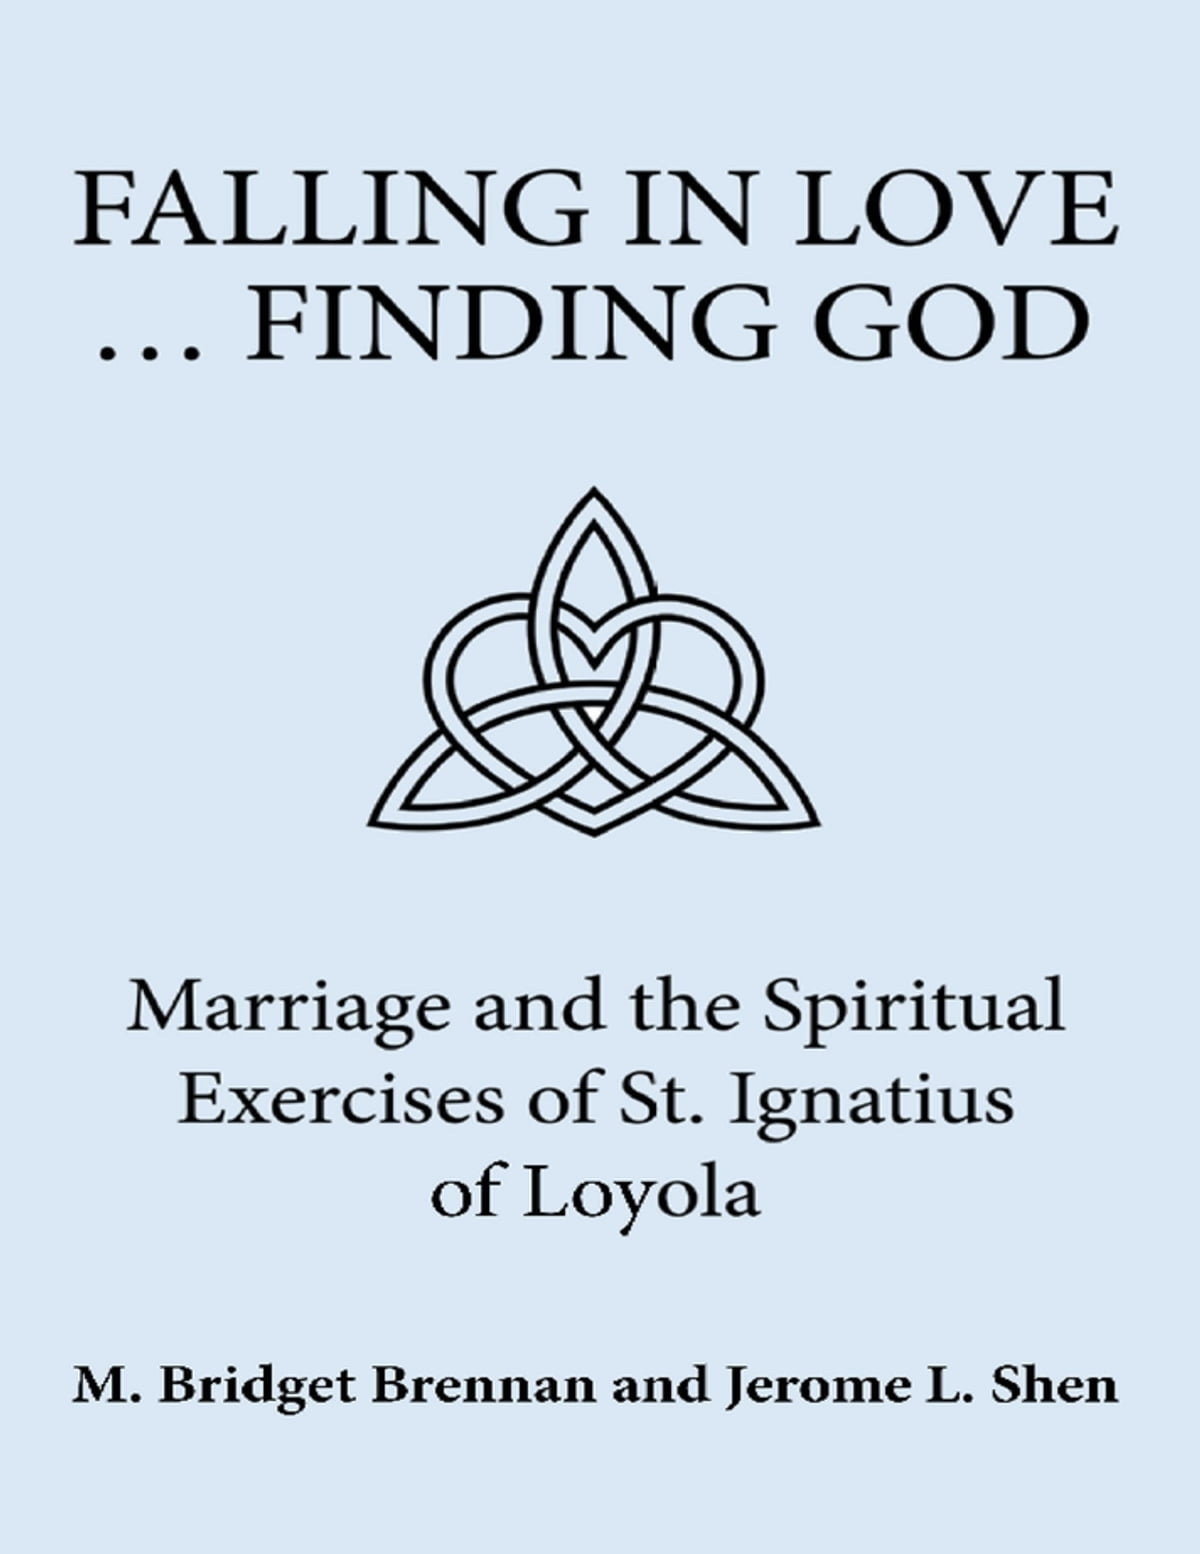 Falling In Love Falling In Love Finding God Marriage And The Spiritual Exercises Of St Ignatius Of Loyola Ebook By M Bridget Brennan Rakuten Kobo